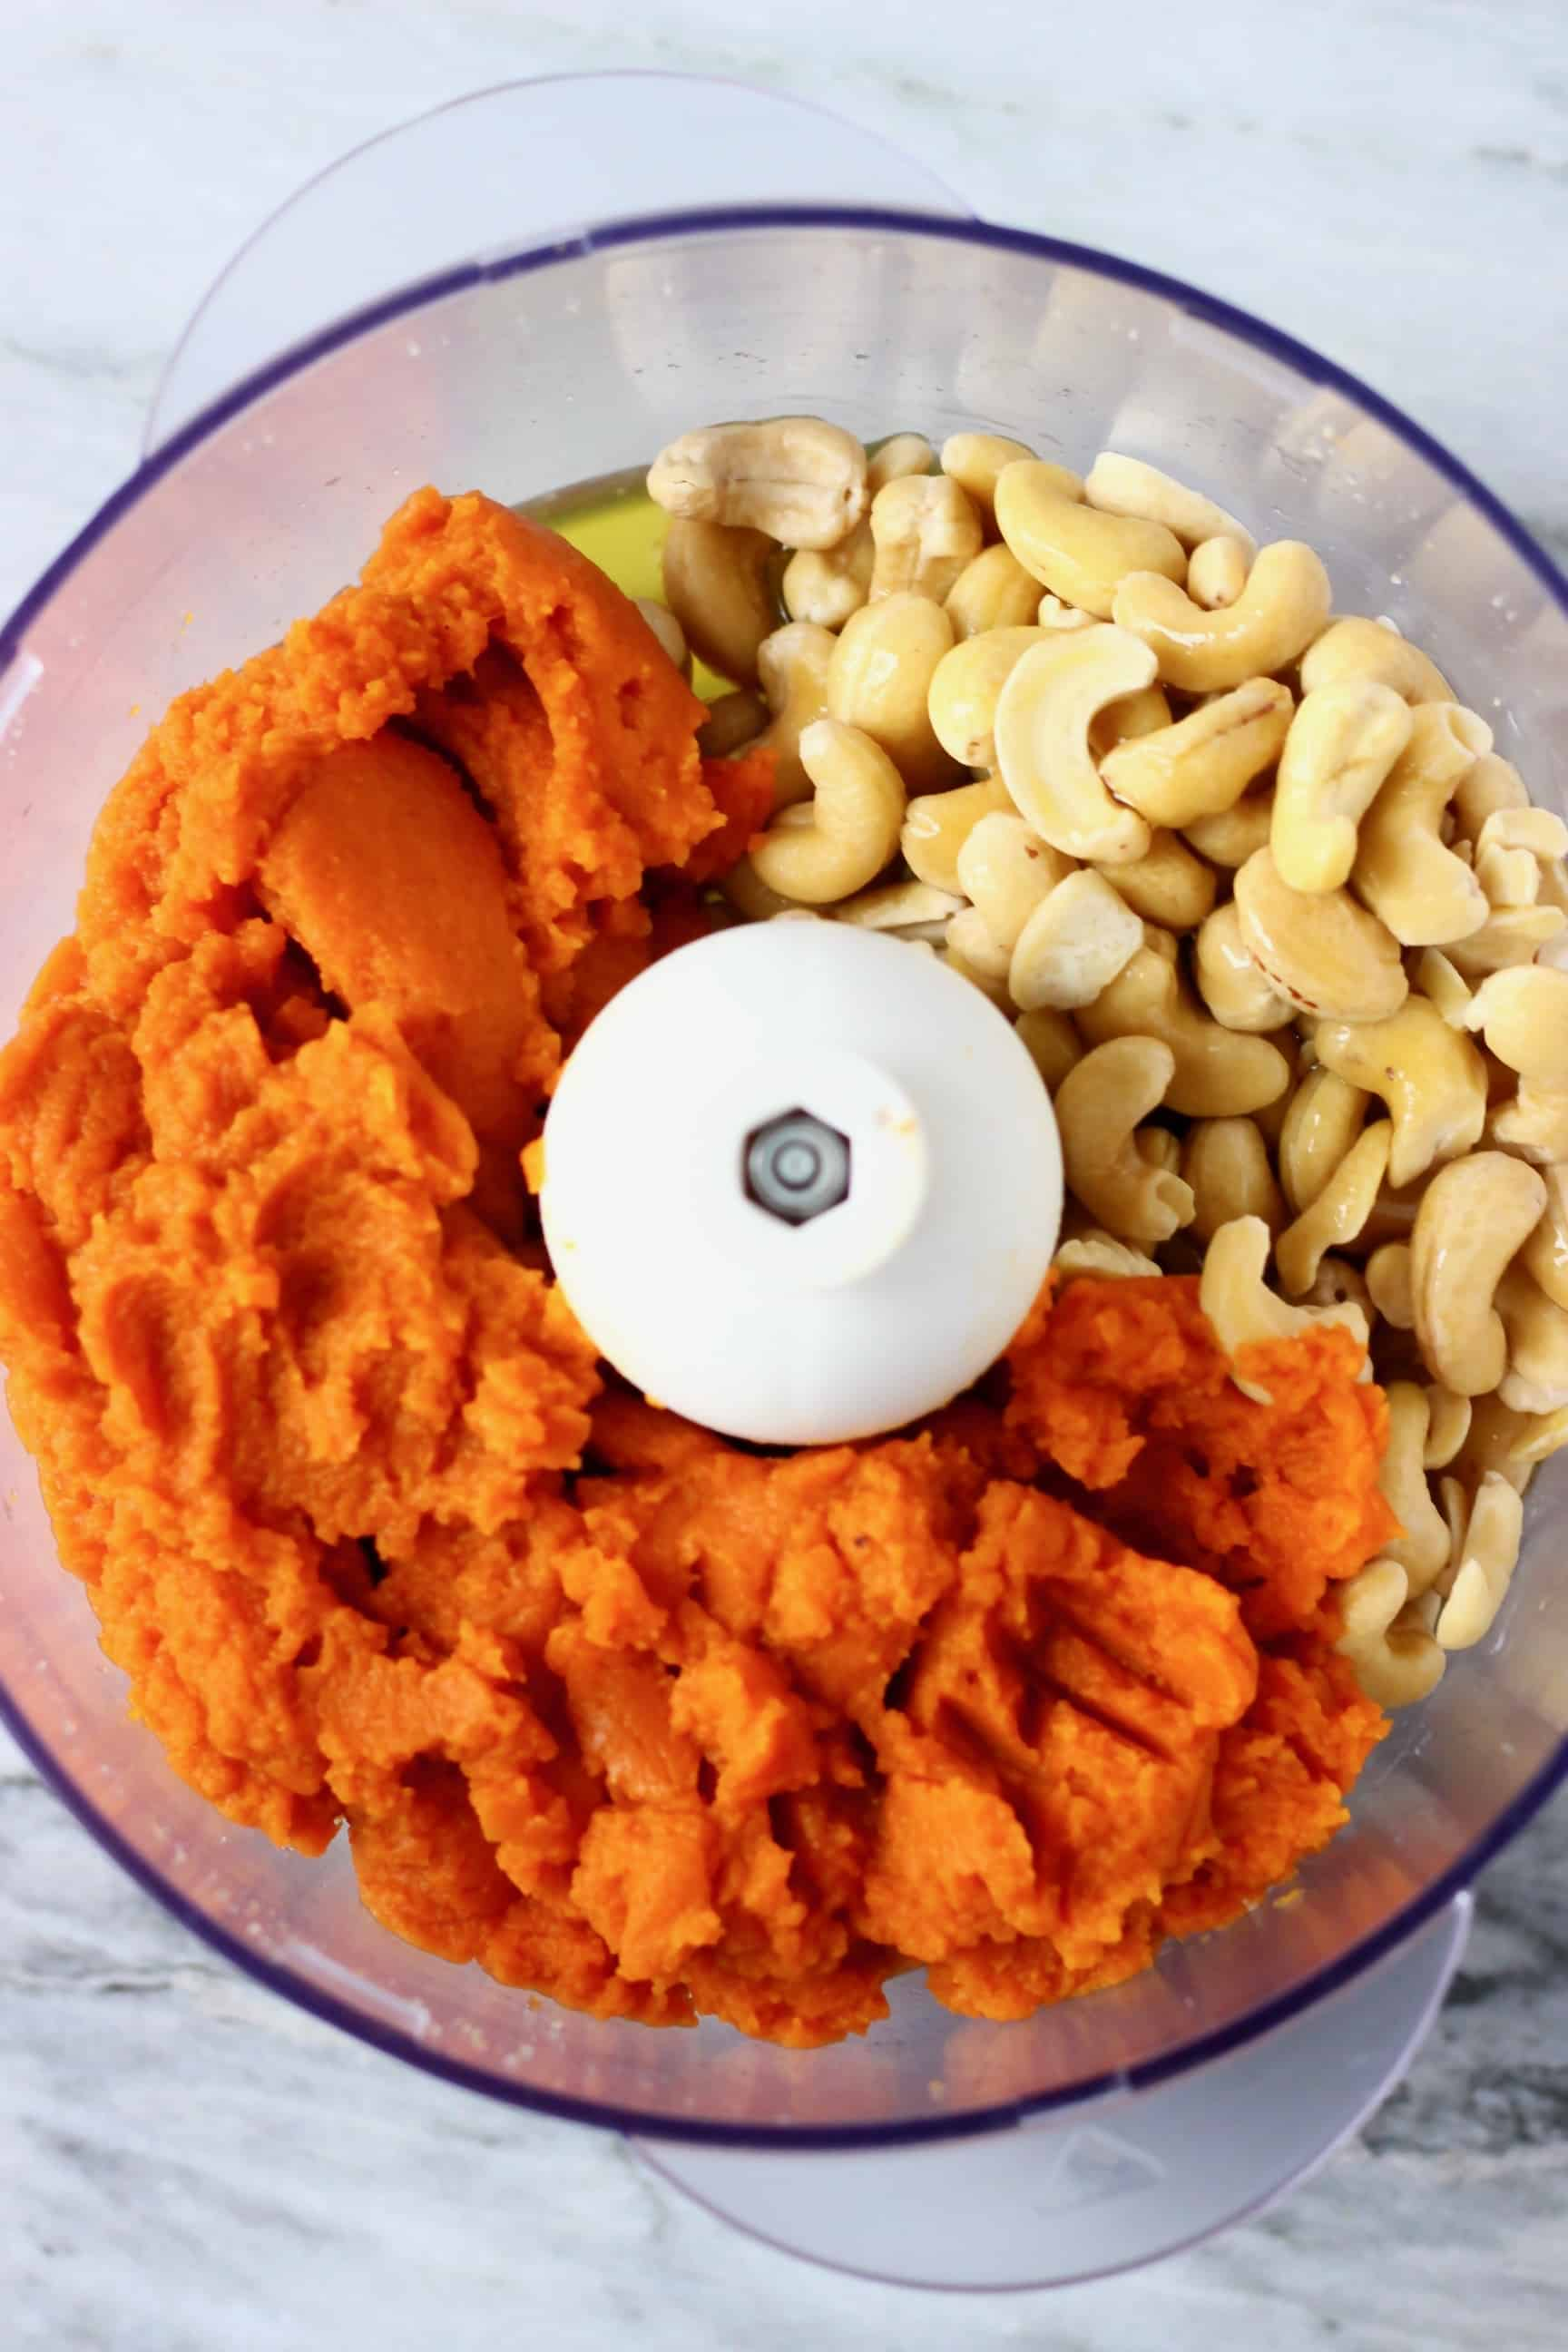 Pumpkin purée, cashew nuts, maple syrup and cacao butter in a food processor